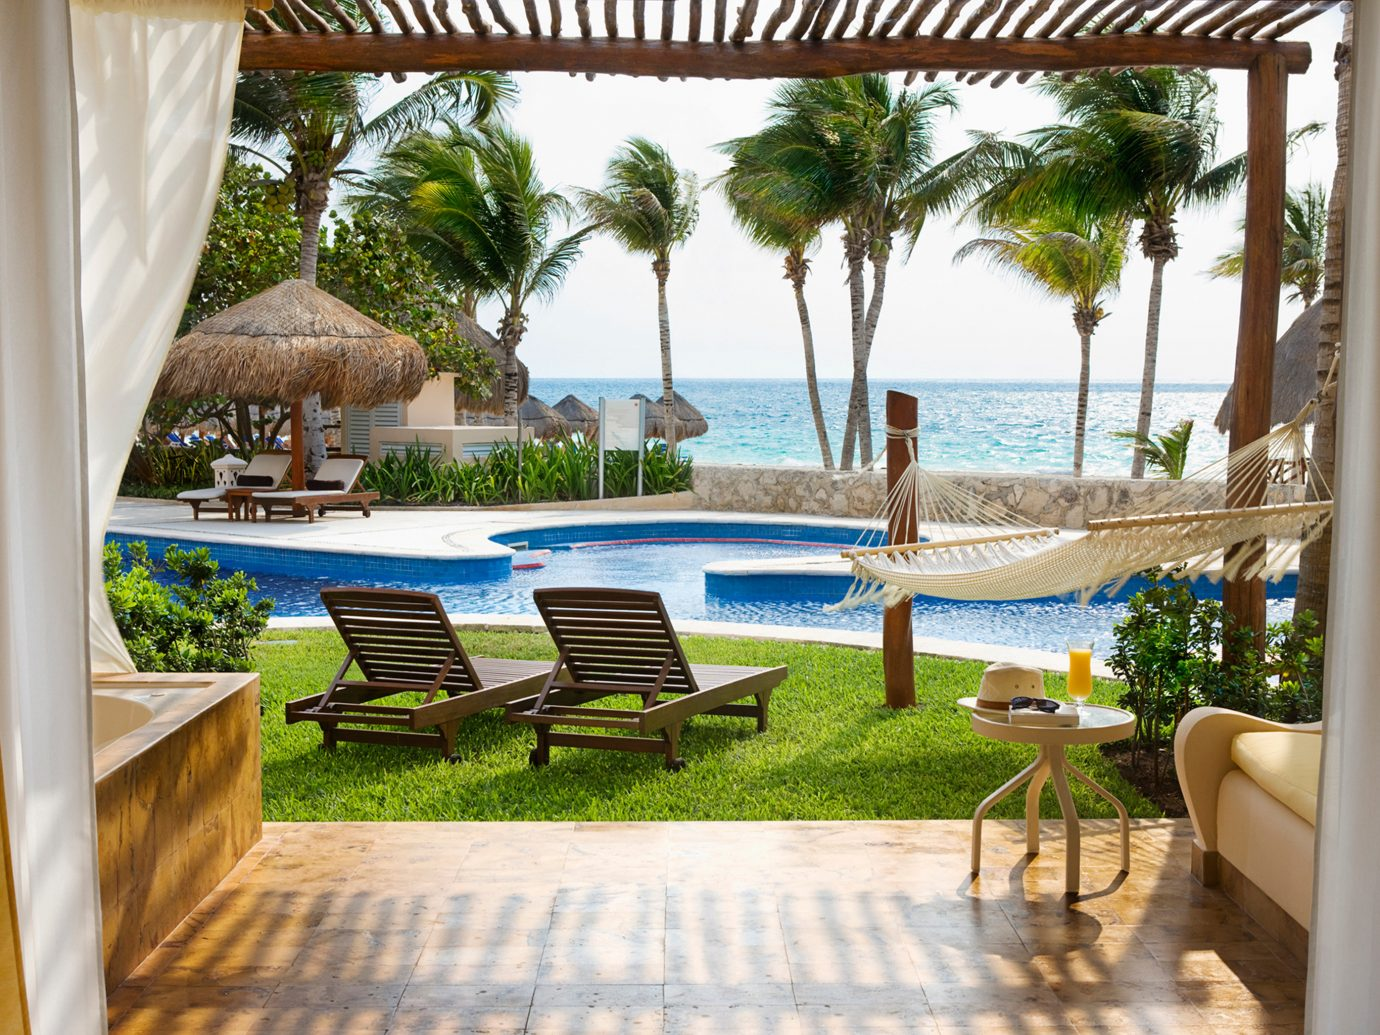 Beachfront Elegant Hip Hotels Luxury Modern Pool tree chair property leisure Resort estate building vacation Villa caribbean condominium home swimming pool furniture real estate mansion backyard porch hacienda eco hotel overlooking area Deck decorated